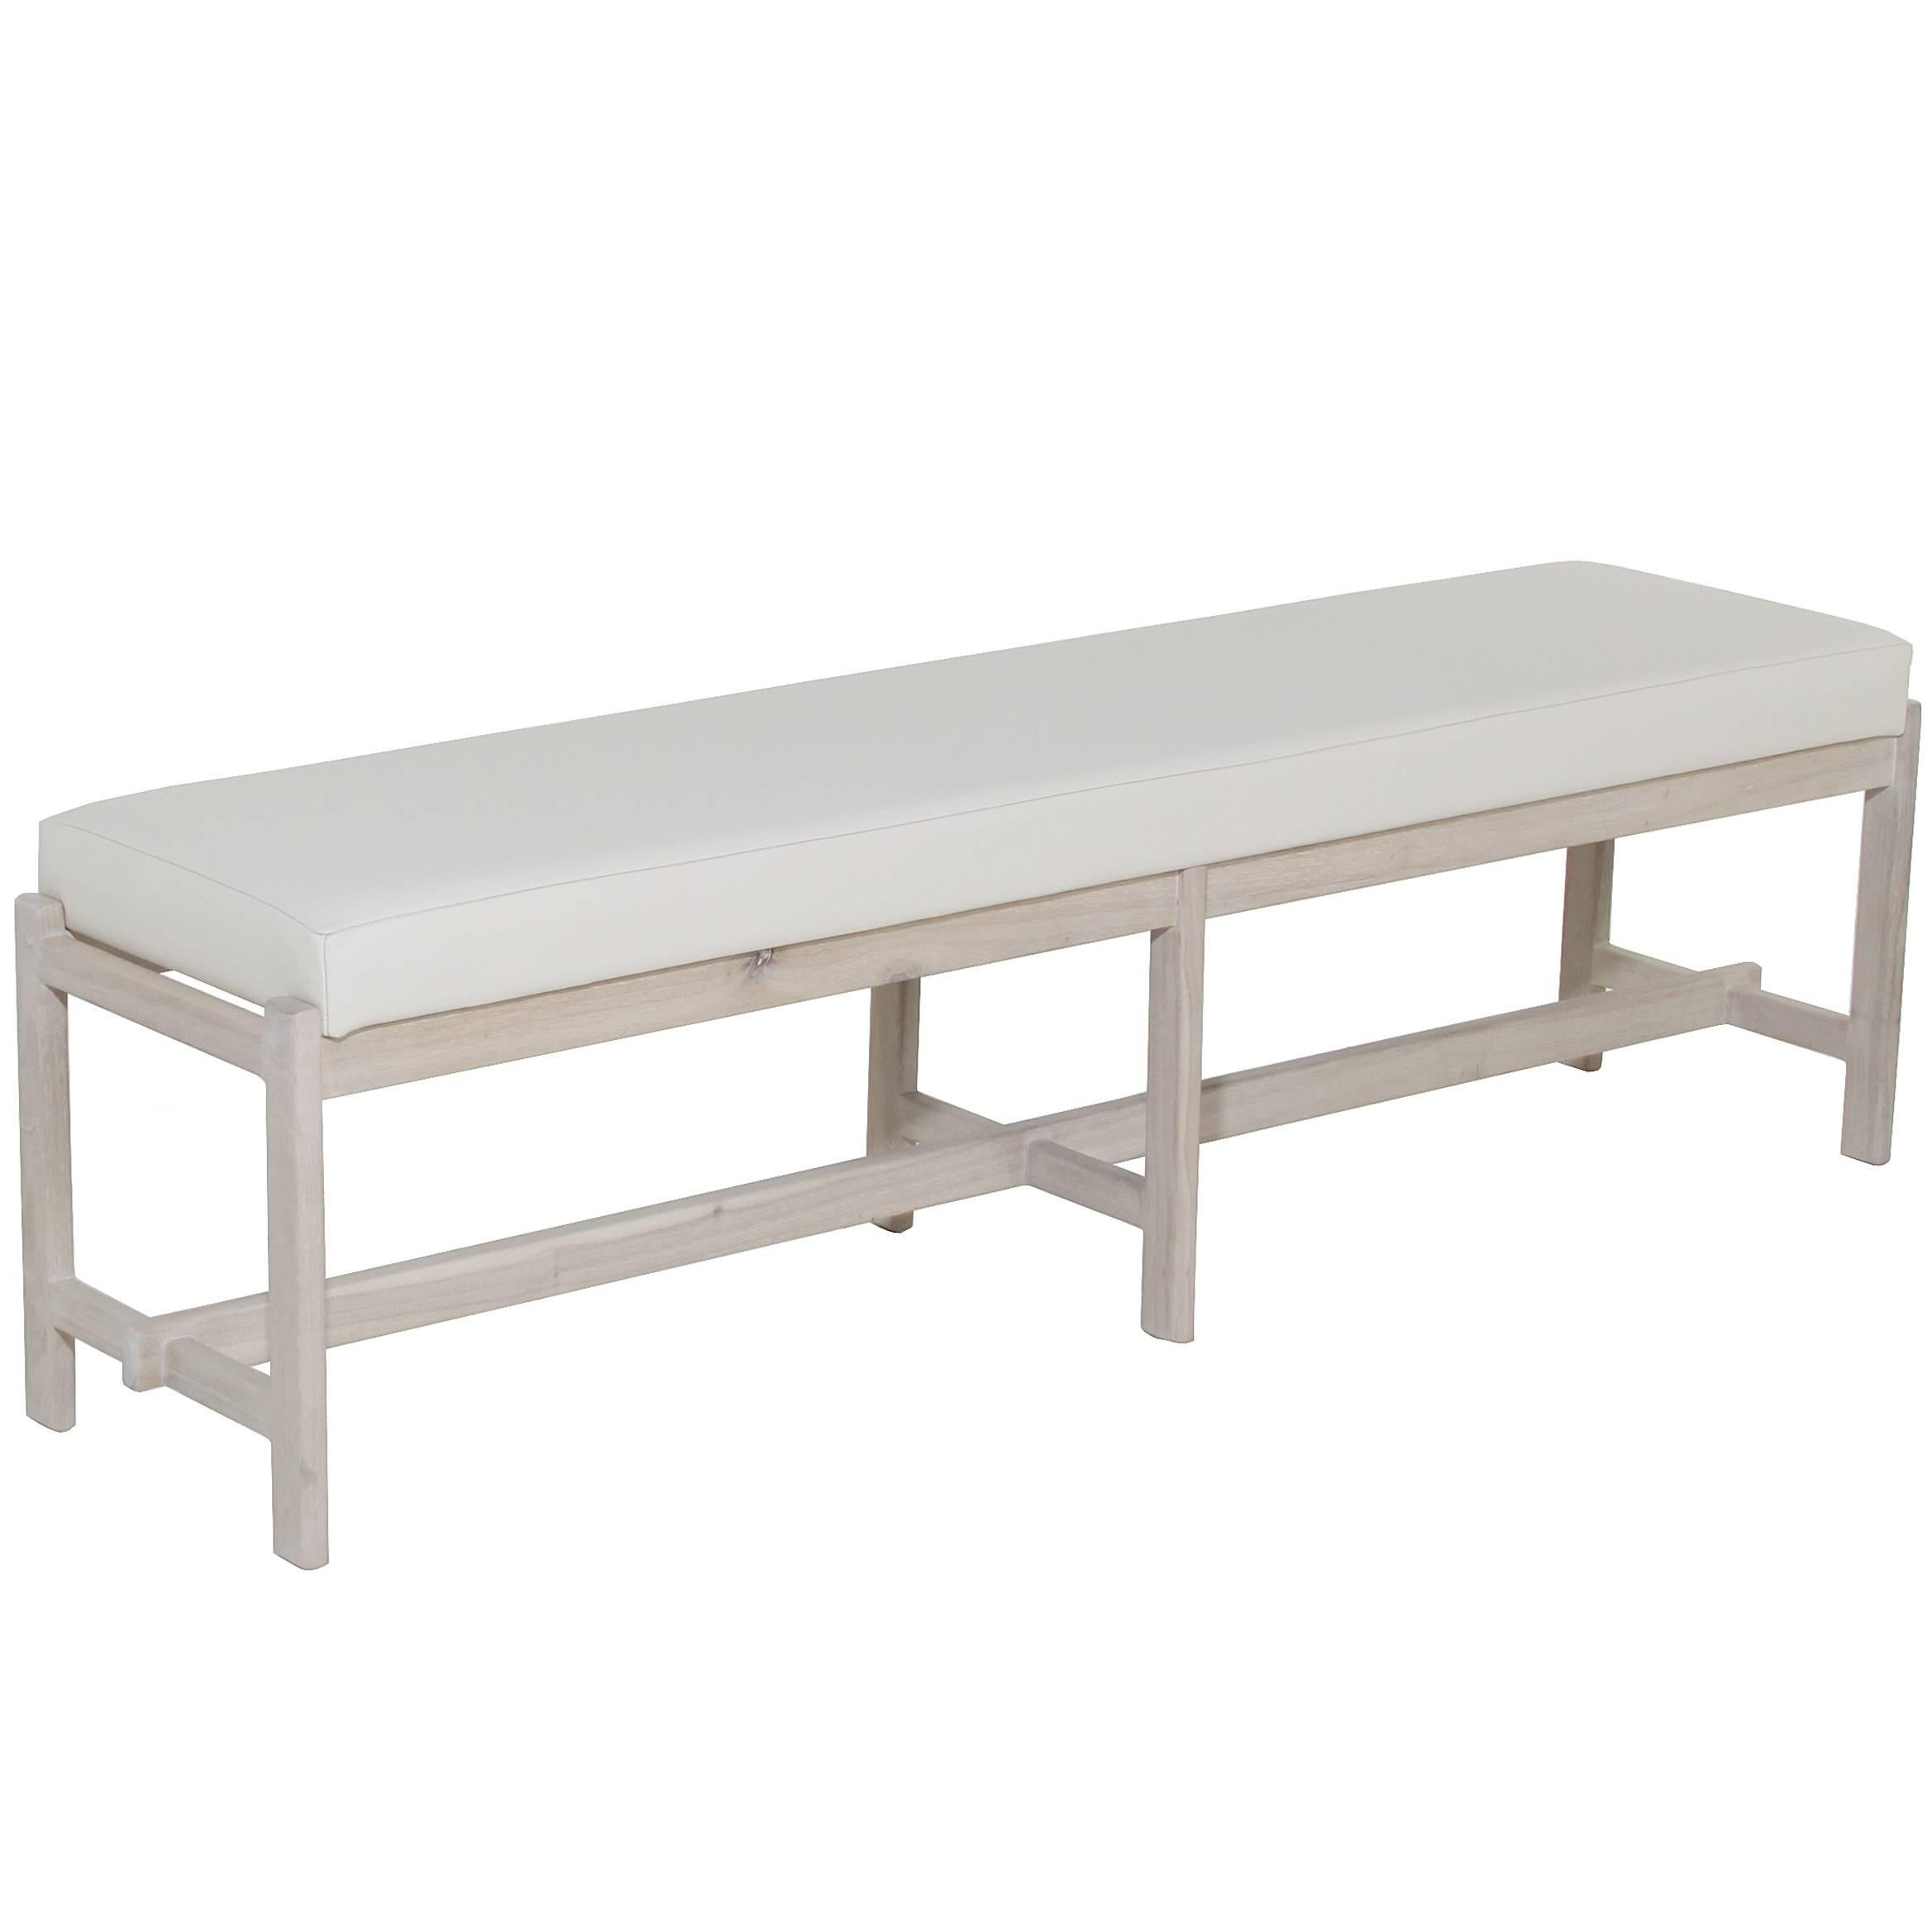 New And Custom Benches